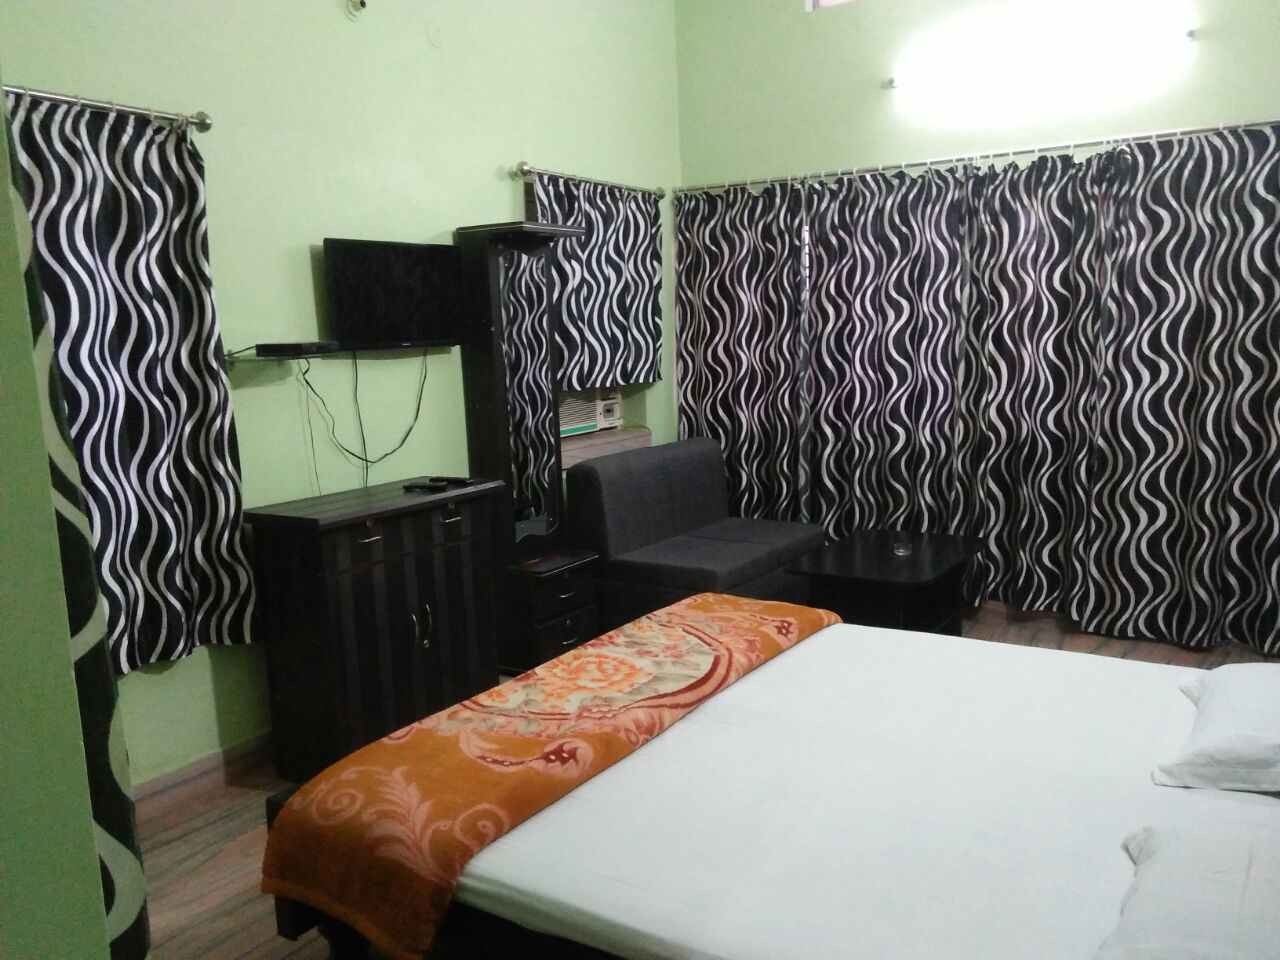 CHEAP & BEST GUEST HOUSE IN PATNA